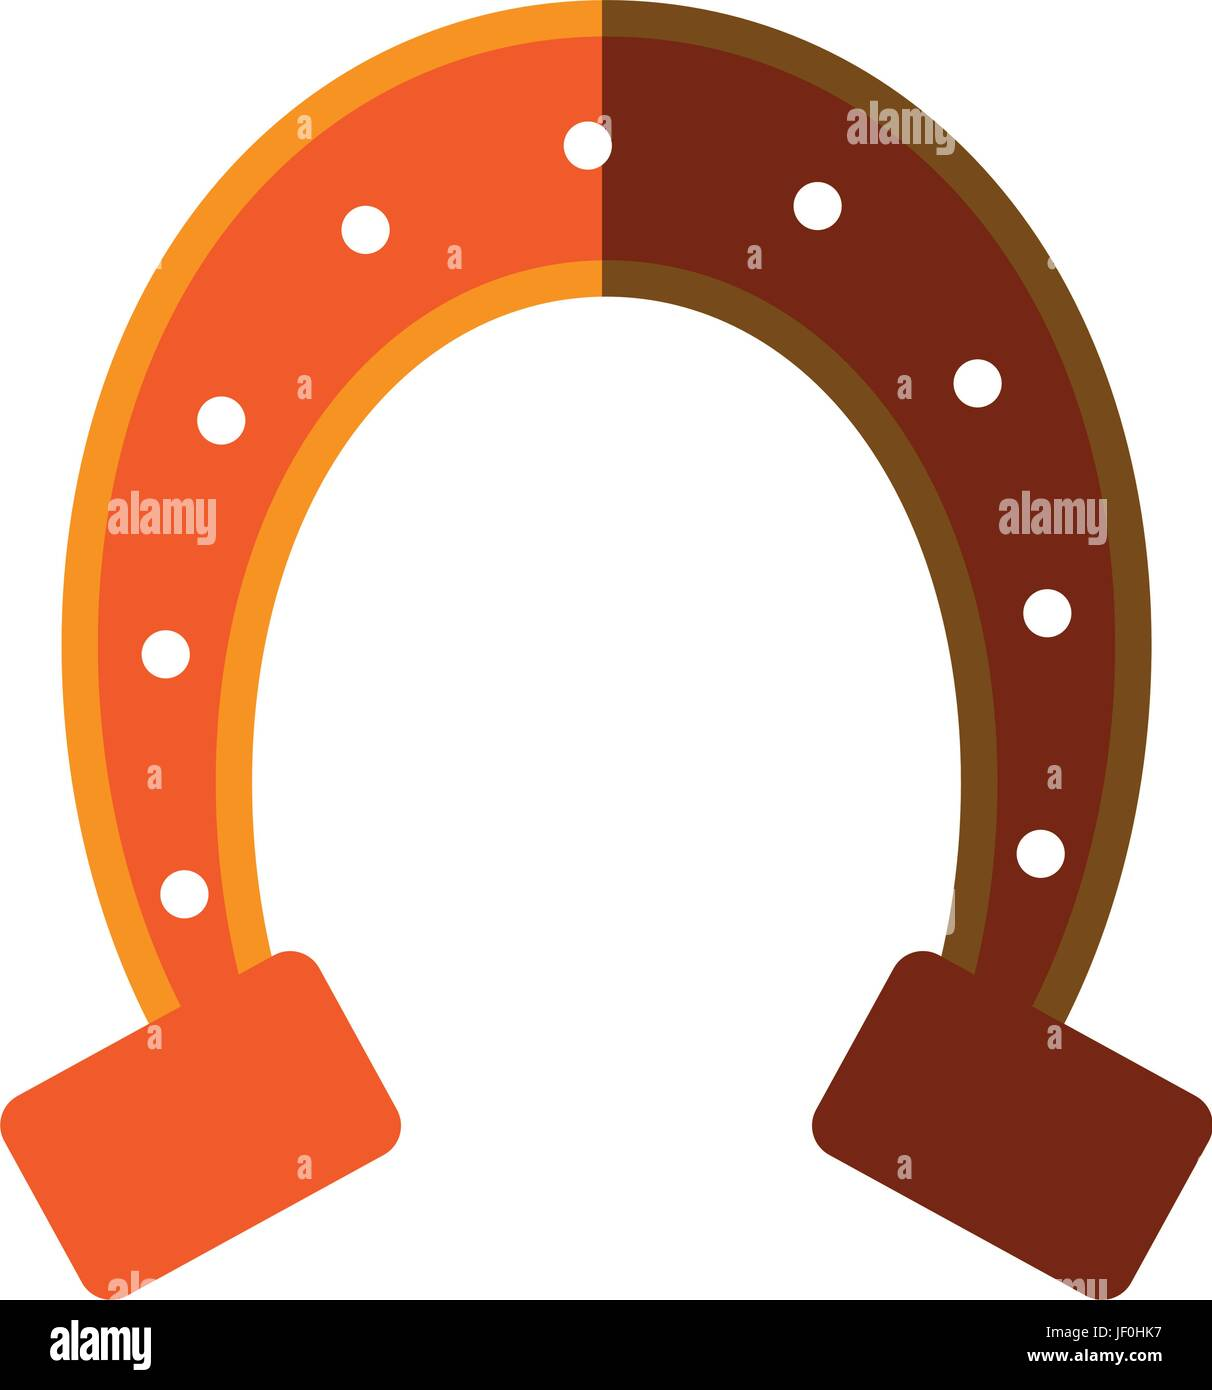 isolated horseshoe icon image  - Stock Vector